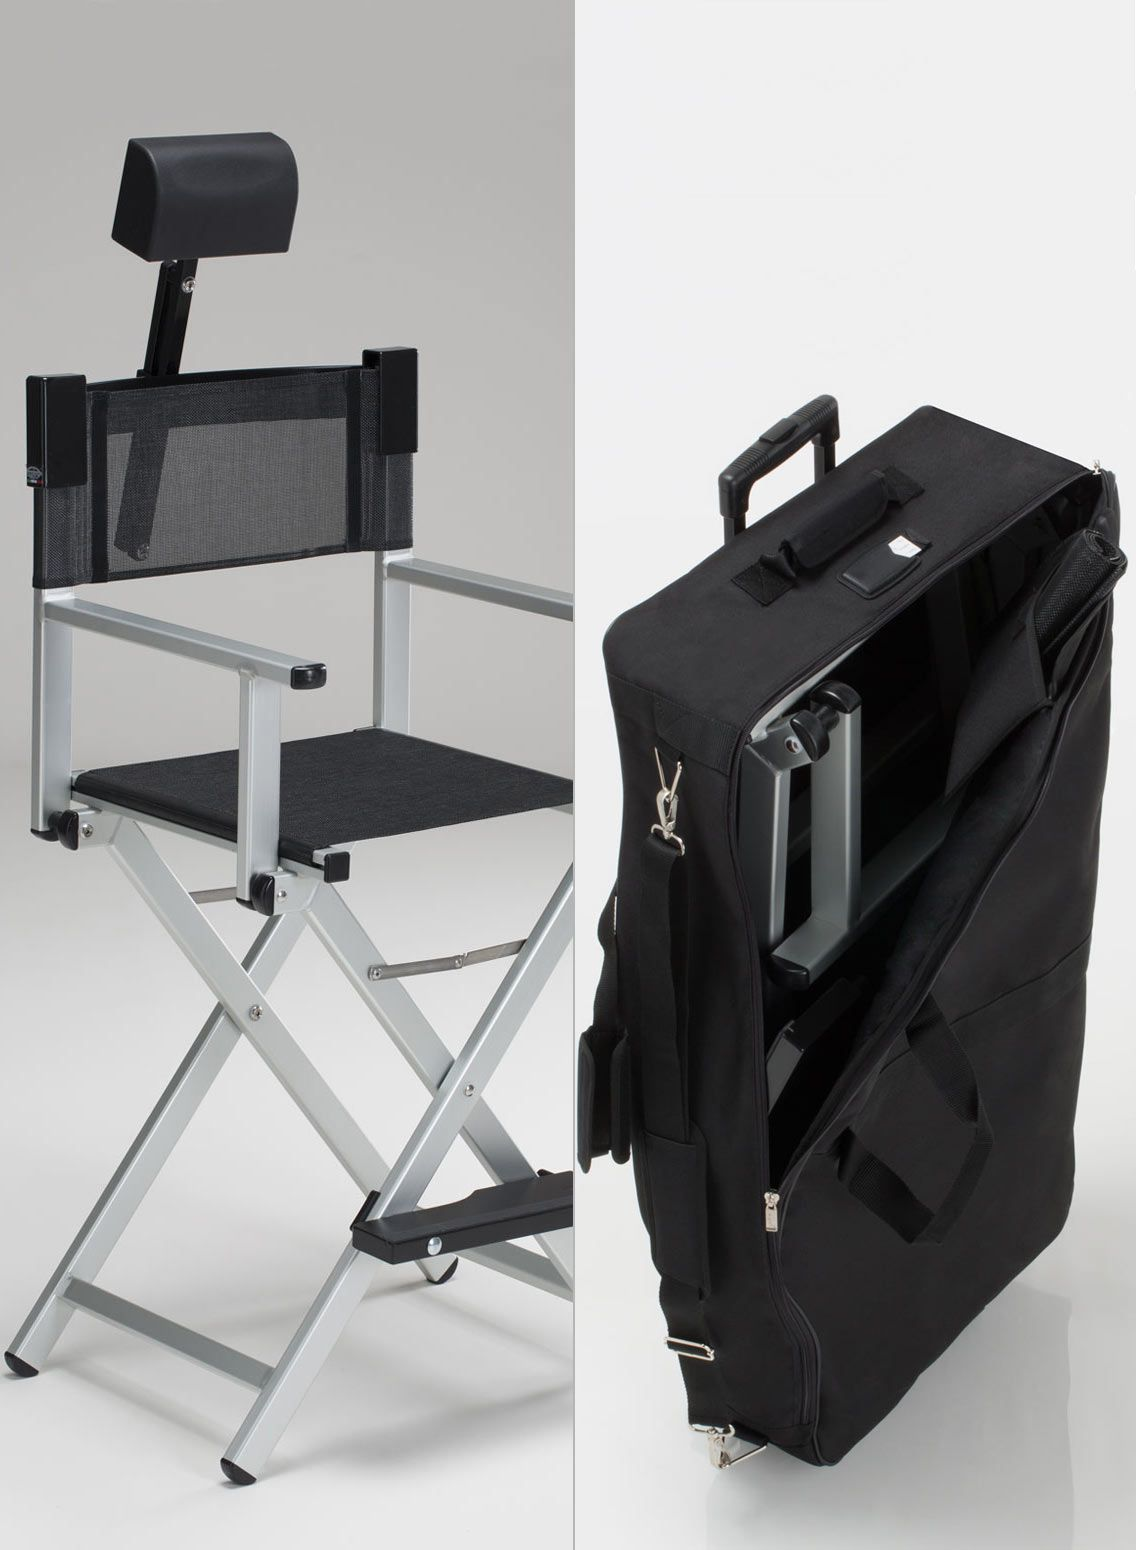 Portable makeup chair - Aluminum Makeup Chair Set With Headrest And Trolley Bag